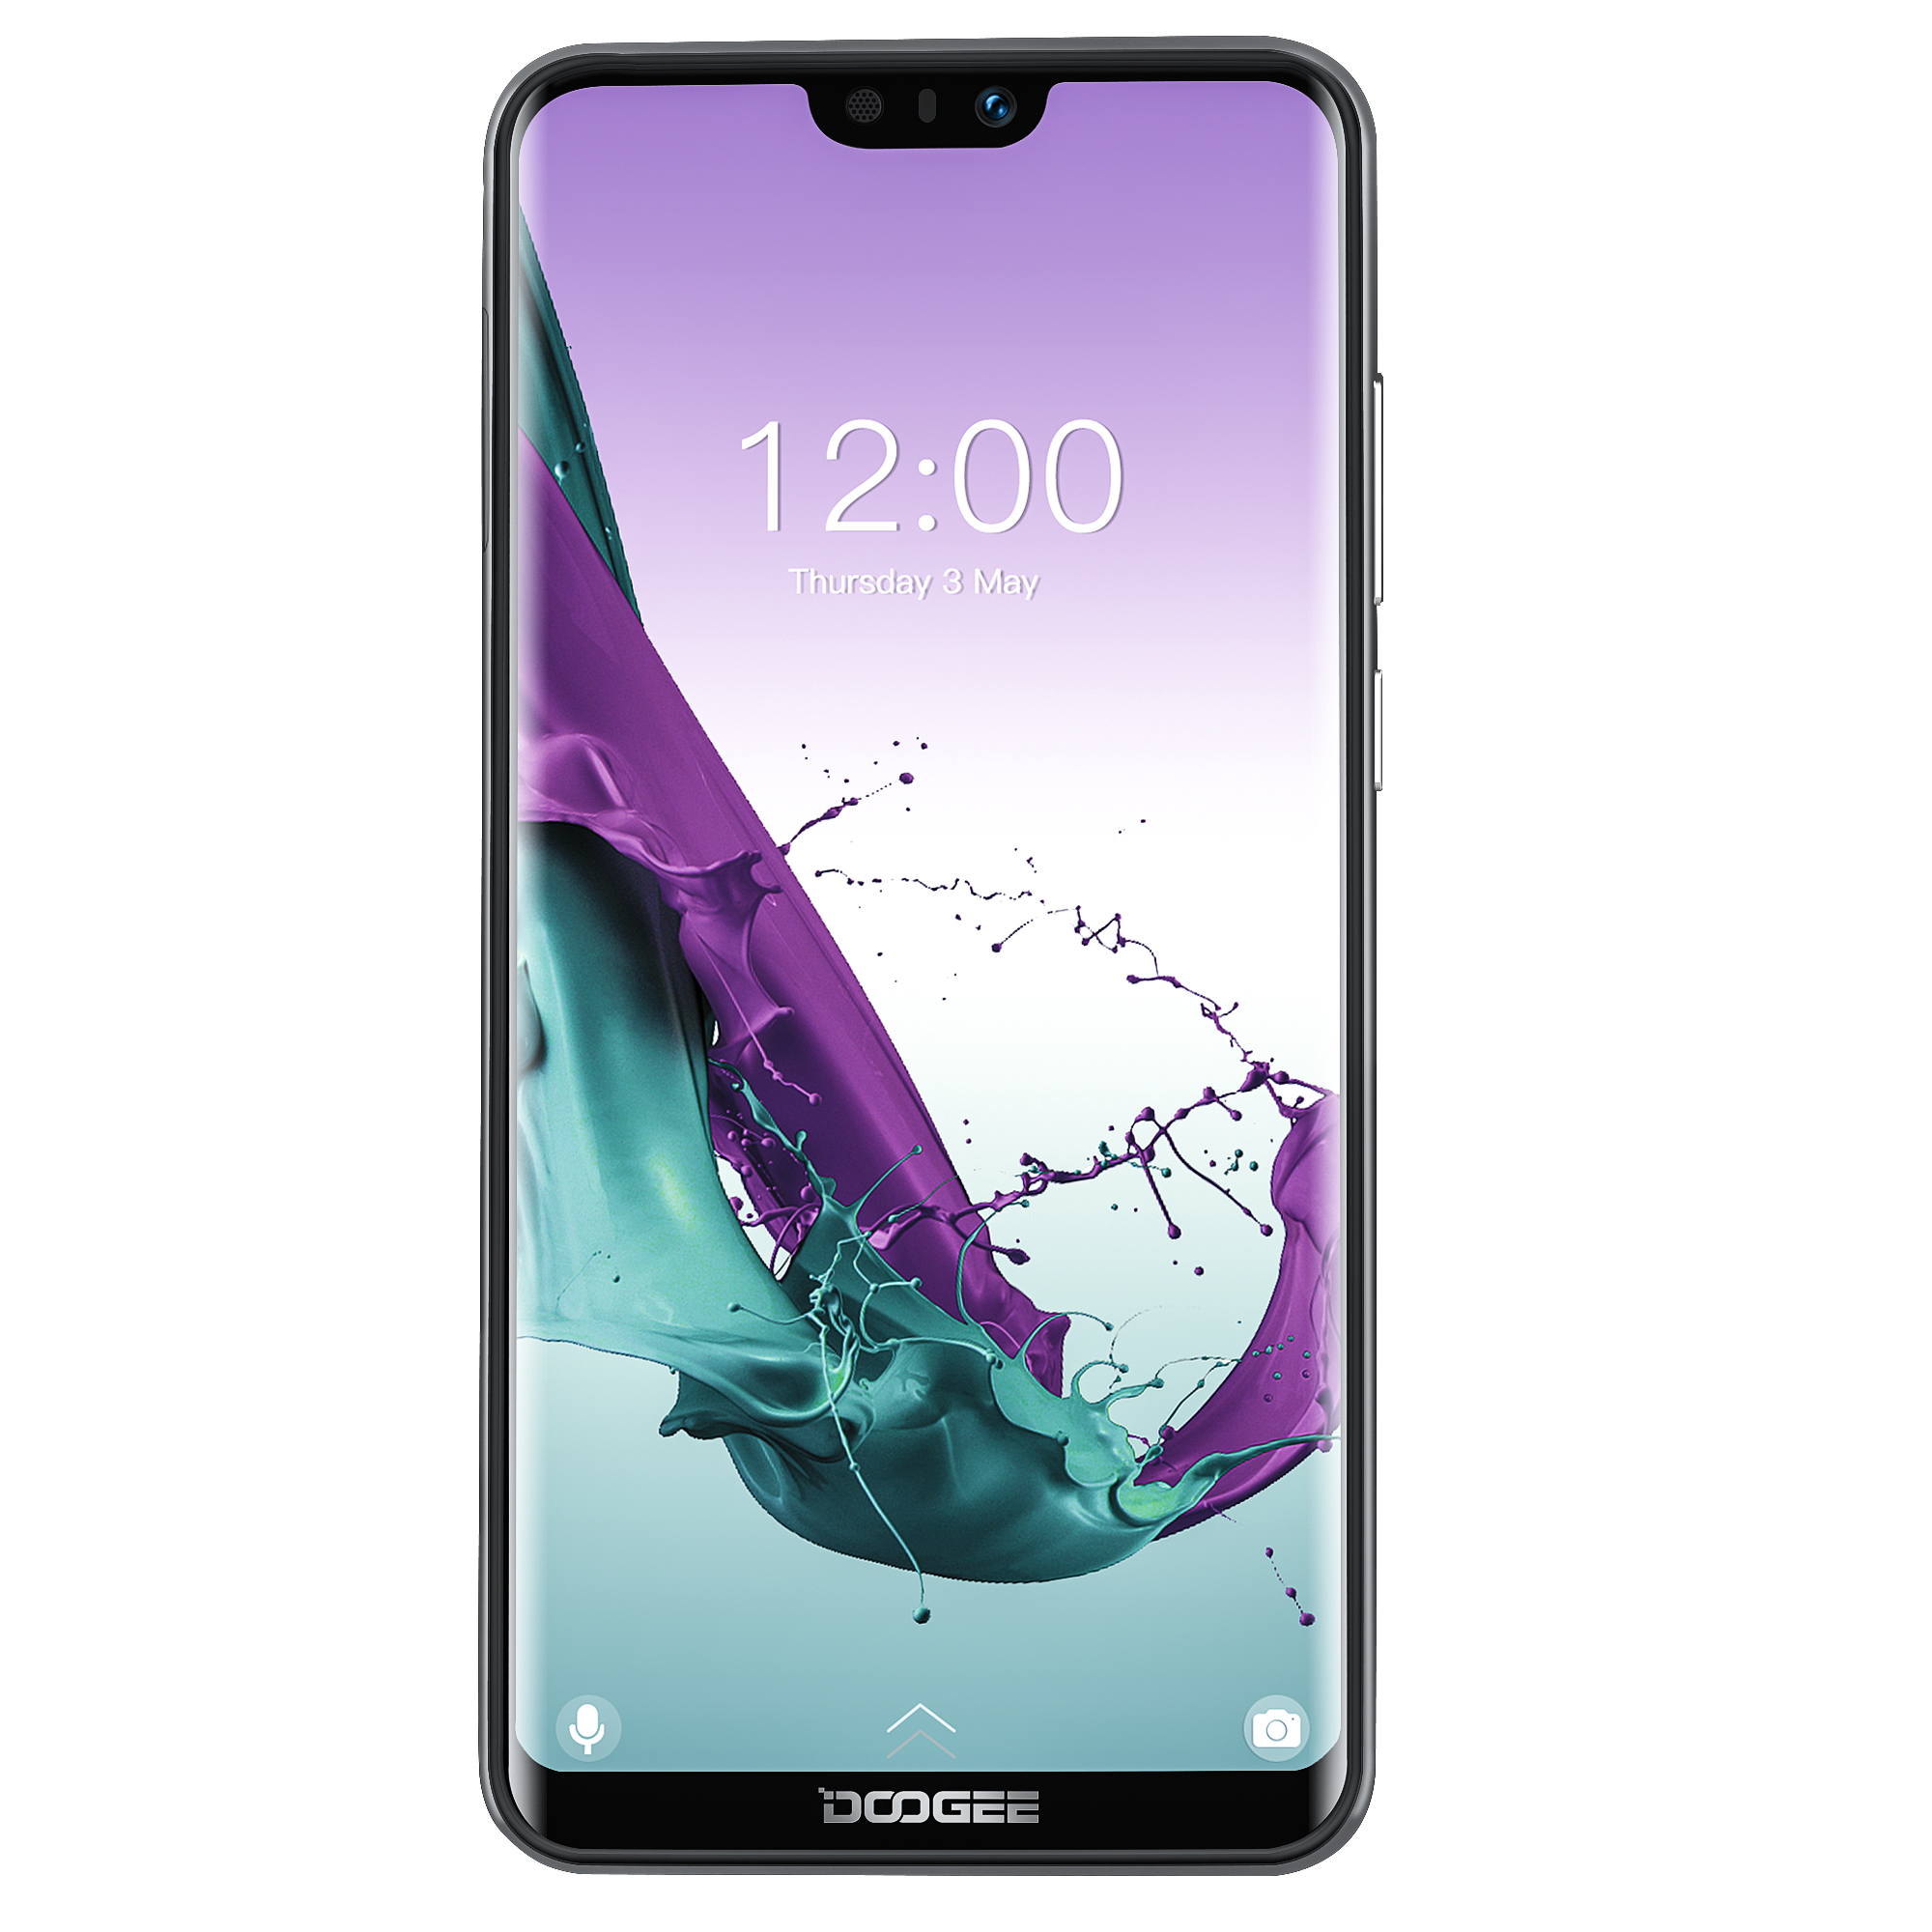 DOOGEE N10 2019 Android 8.14G LTE Handy 5,84 zoll Octa Core 3GB RAM 32GB ROM FHD 19:9 display 16.0MP Vorne Kamera 3360mAh